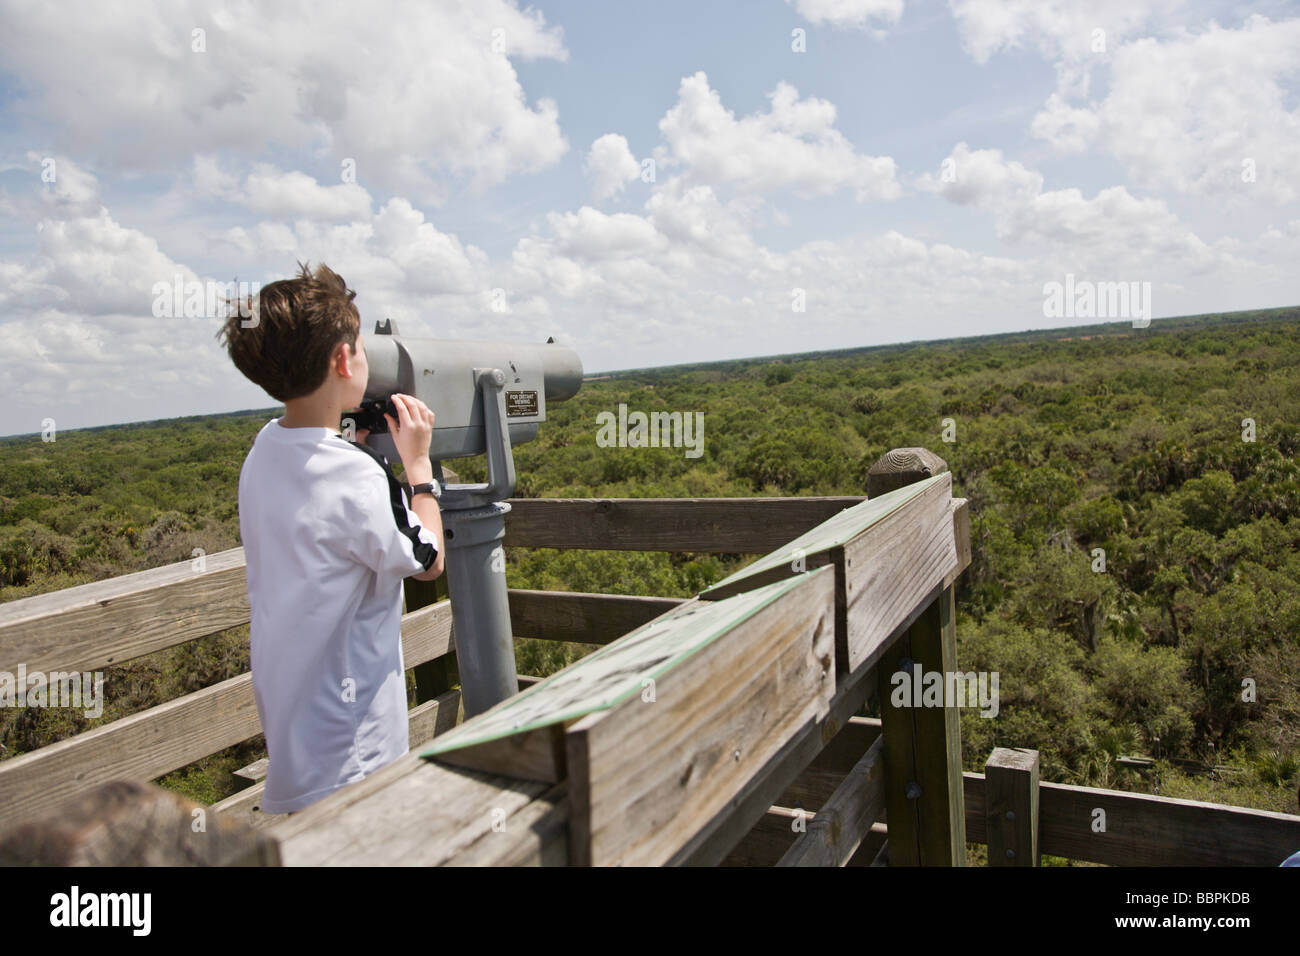 From the canopy tower at Myakka River State Park in Florida, a boy looks through the binoculars at the Florida landscape. Stock Photo